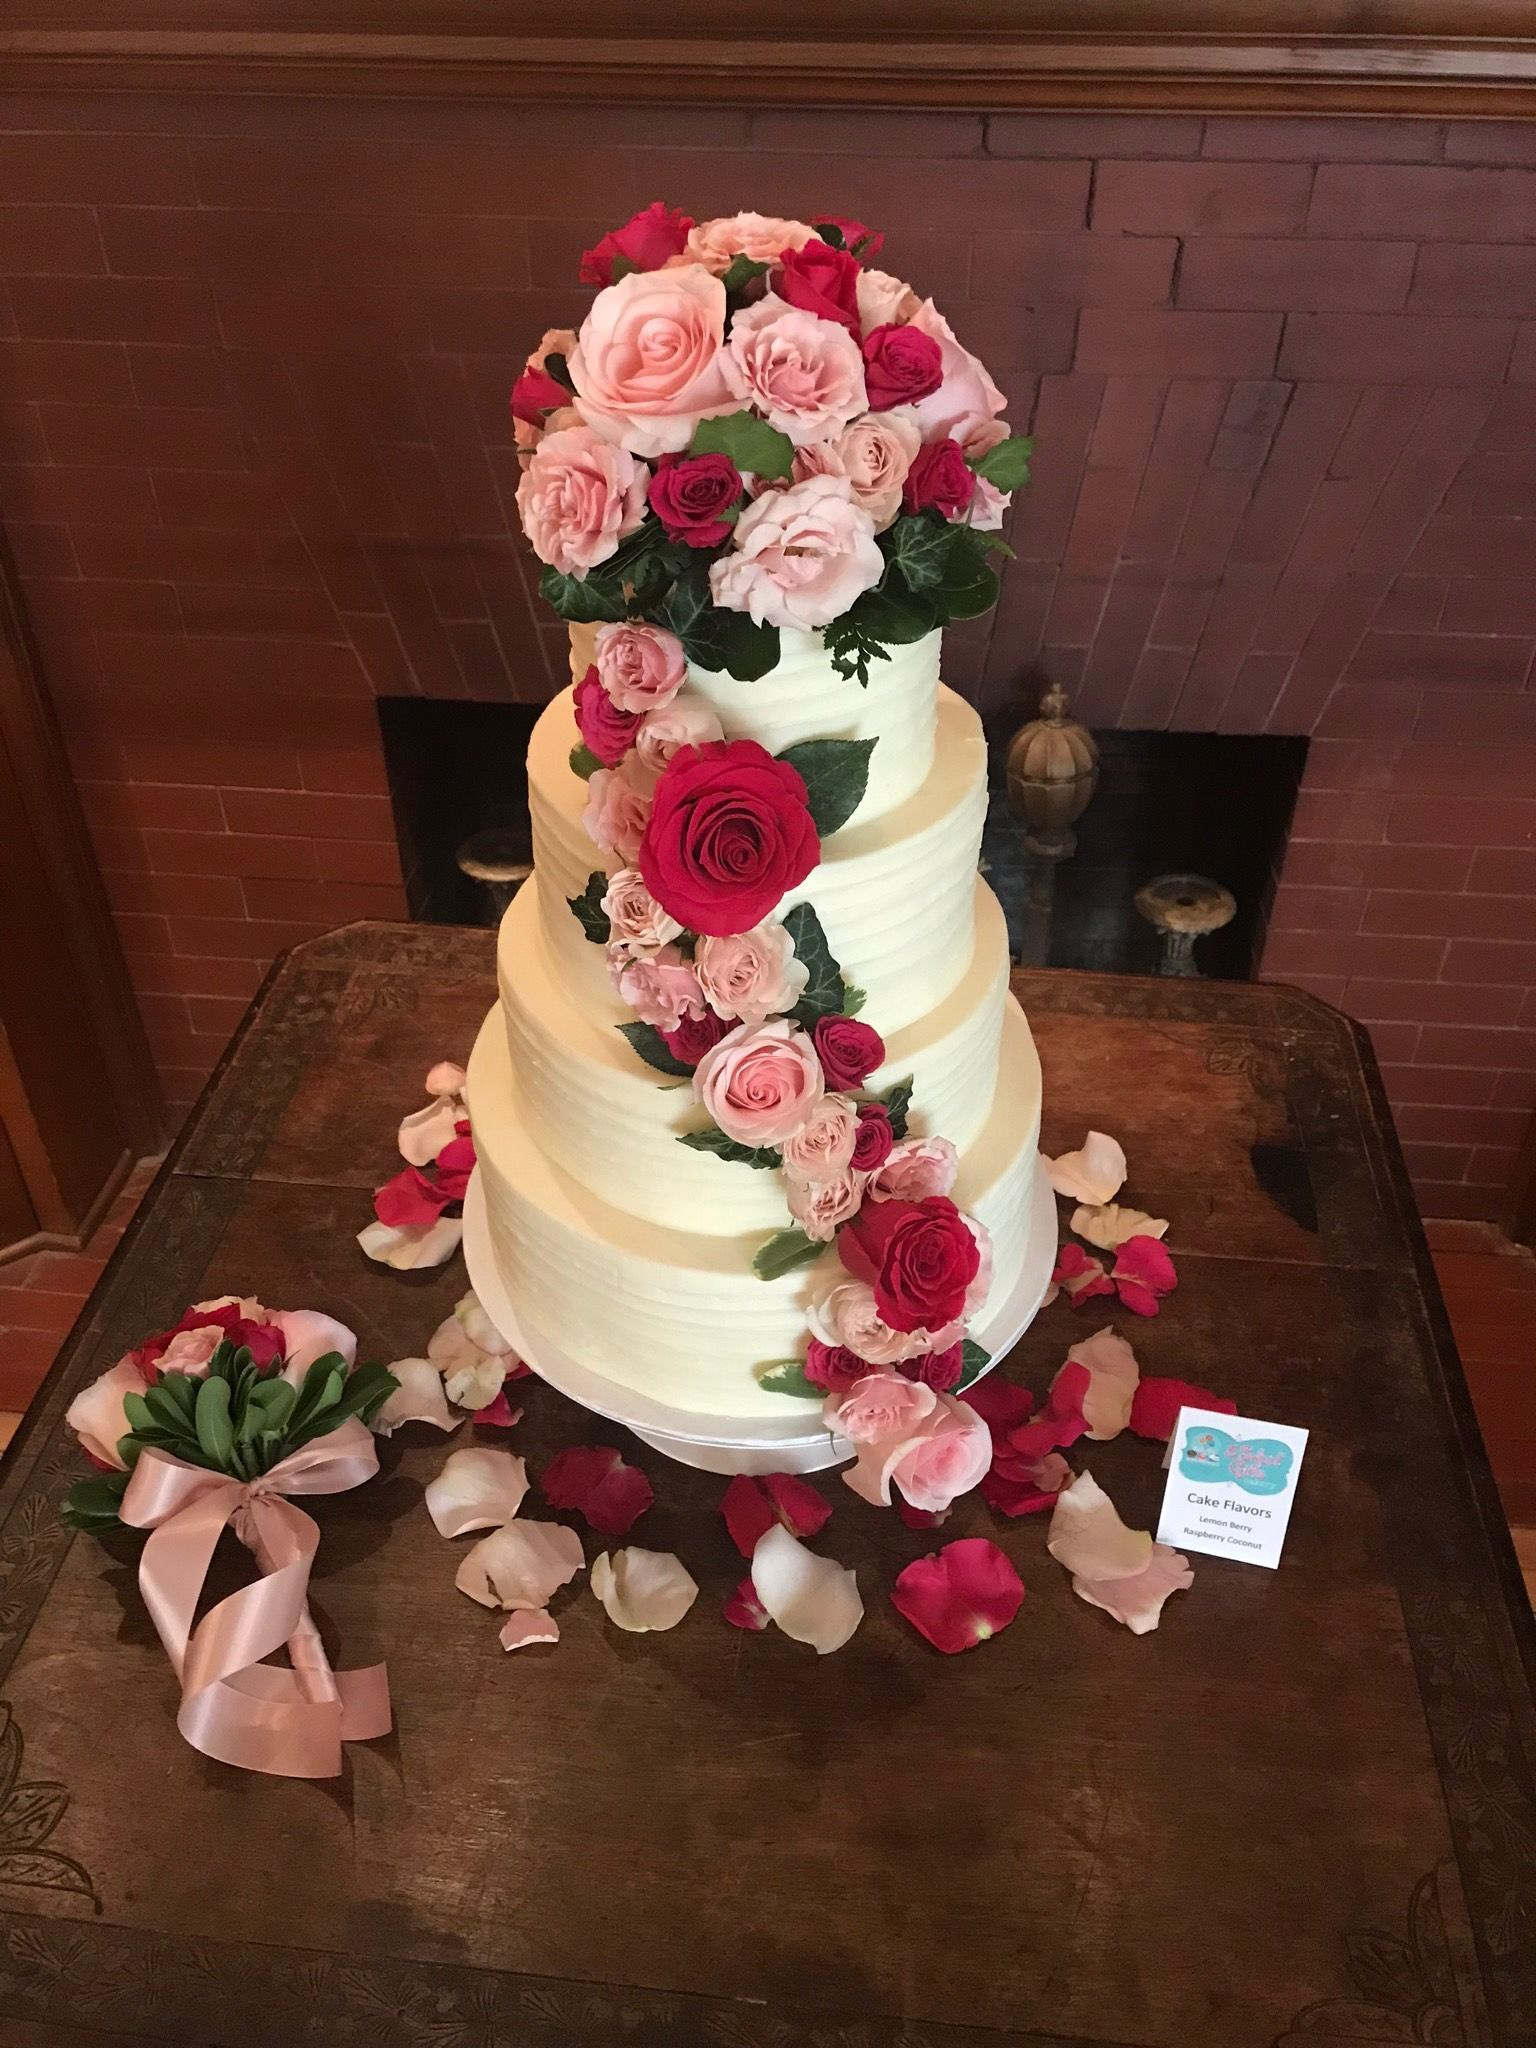 White Buttercream 4 Tier Cake With Pink And Red Roses By 3 Sweet Girls Cakery Cake Tiered Cakes Wedding Dessert Table